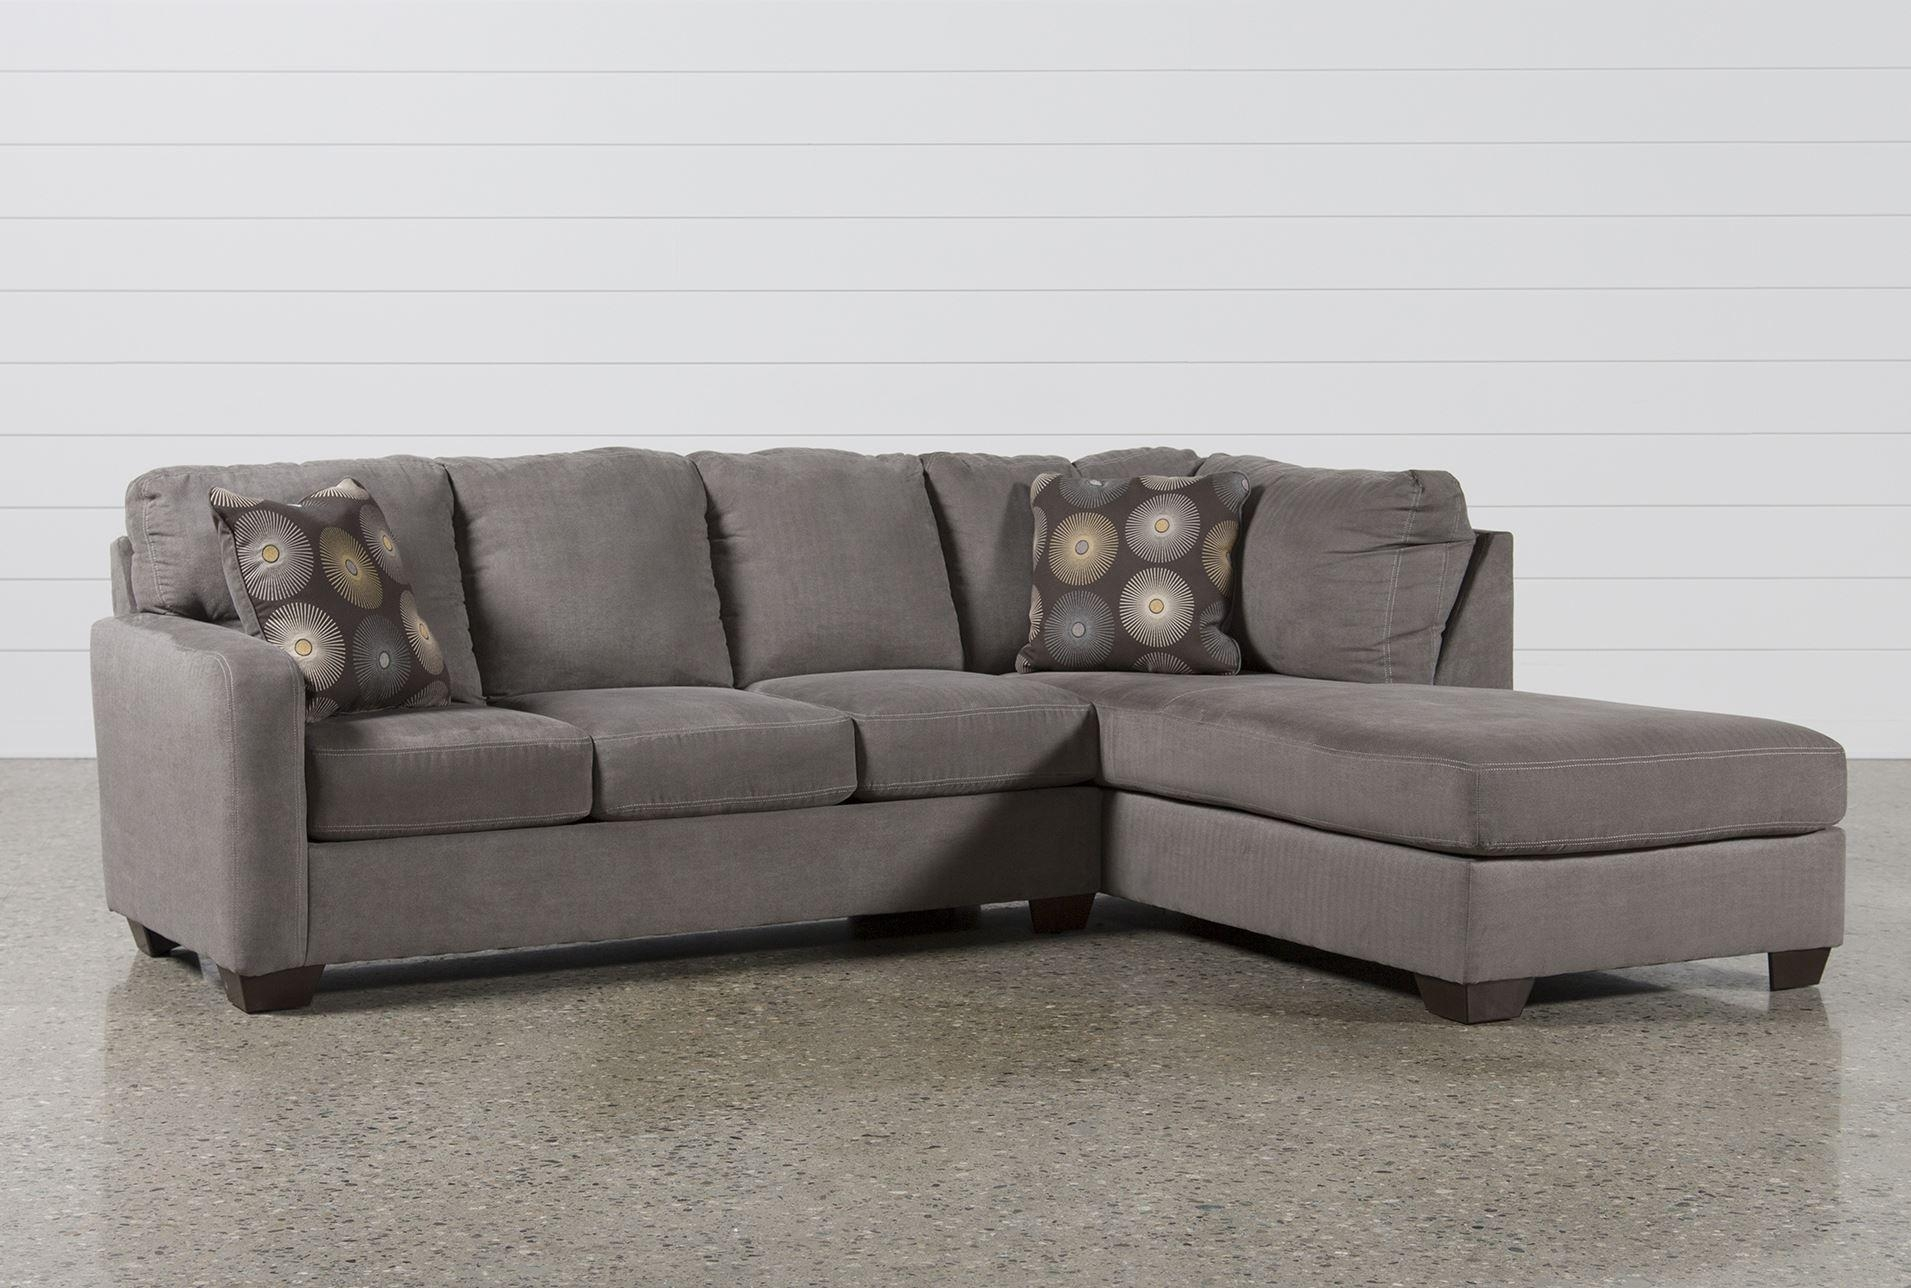 Long Sectional Sofa Toronto | Tehranmix Decoration In Long Sectional Sofa With Chaise (Image 12 of 20)